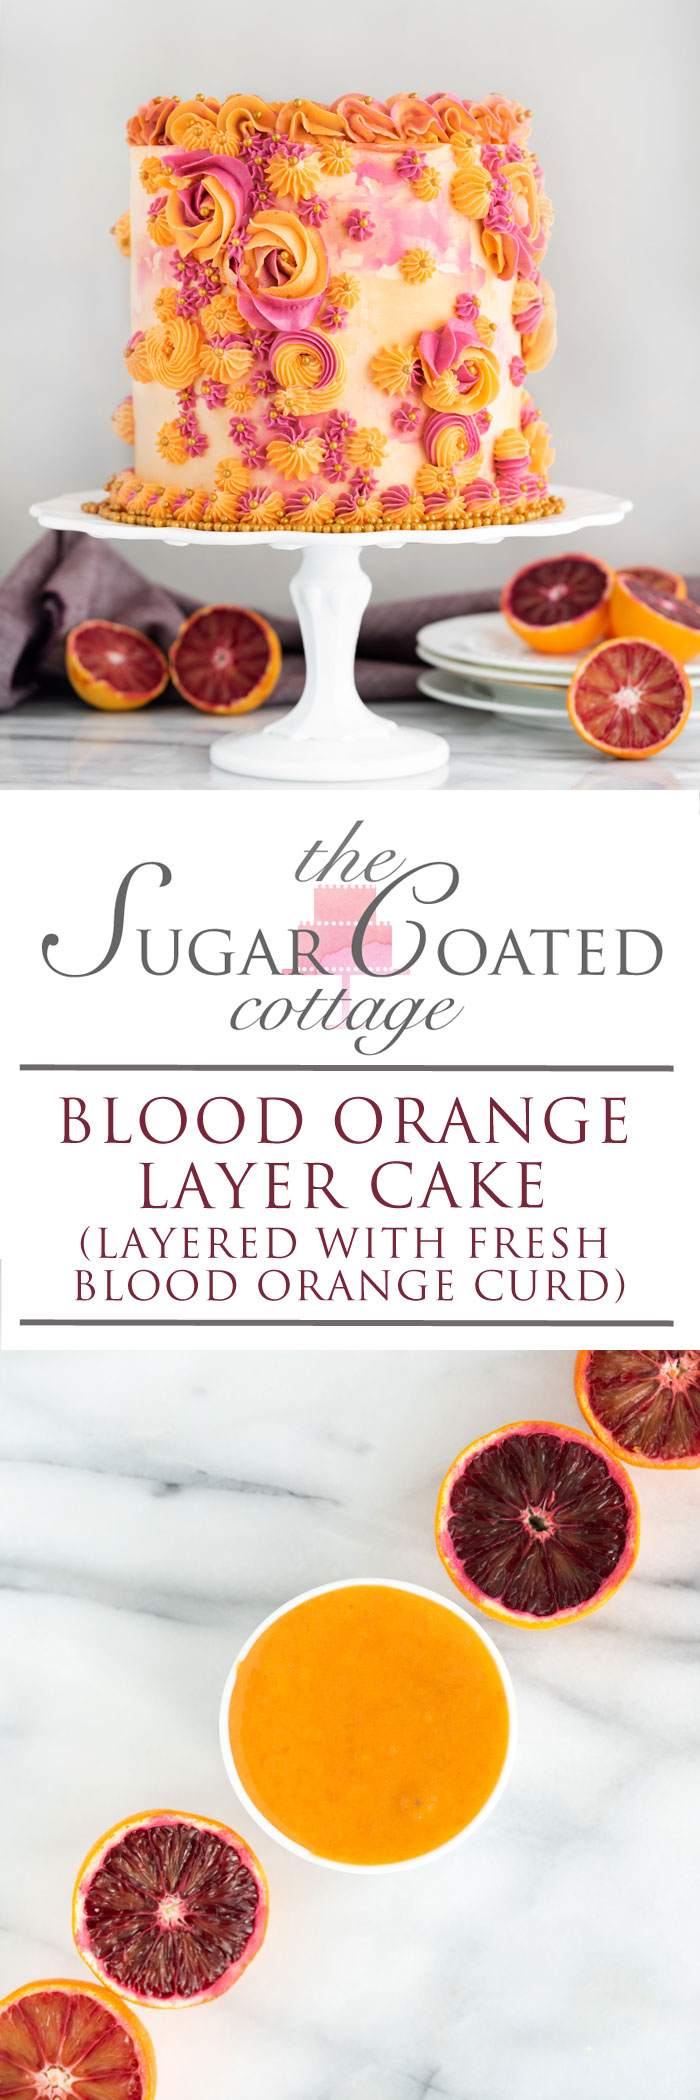 Blood Orange Cake. Blood orange scented cake layered with fresh blood orange curd. | thesugarcoatedcottage.com #bloodorange #orangecurd #cake #buttercream